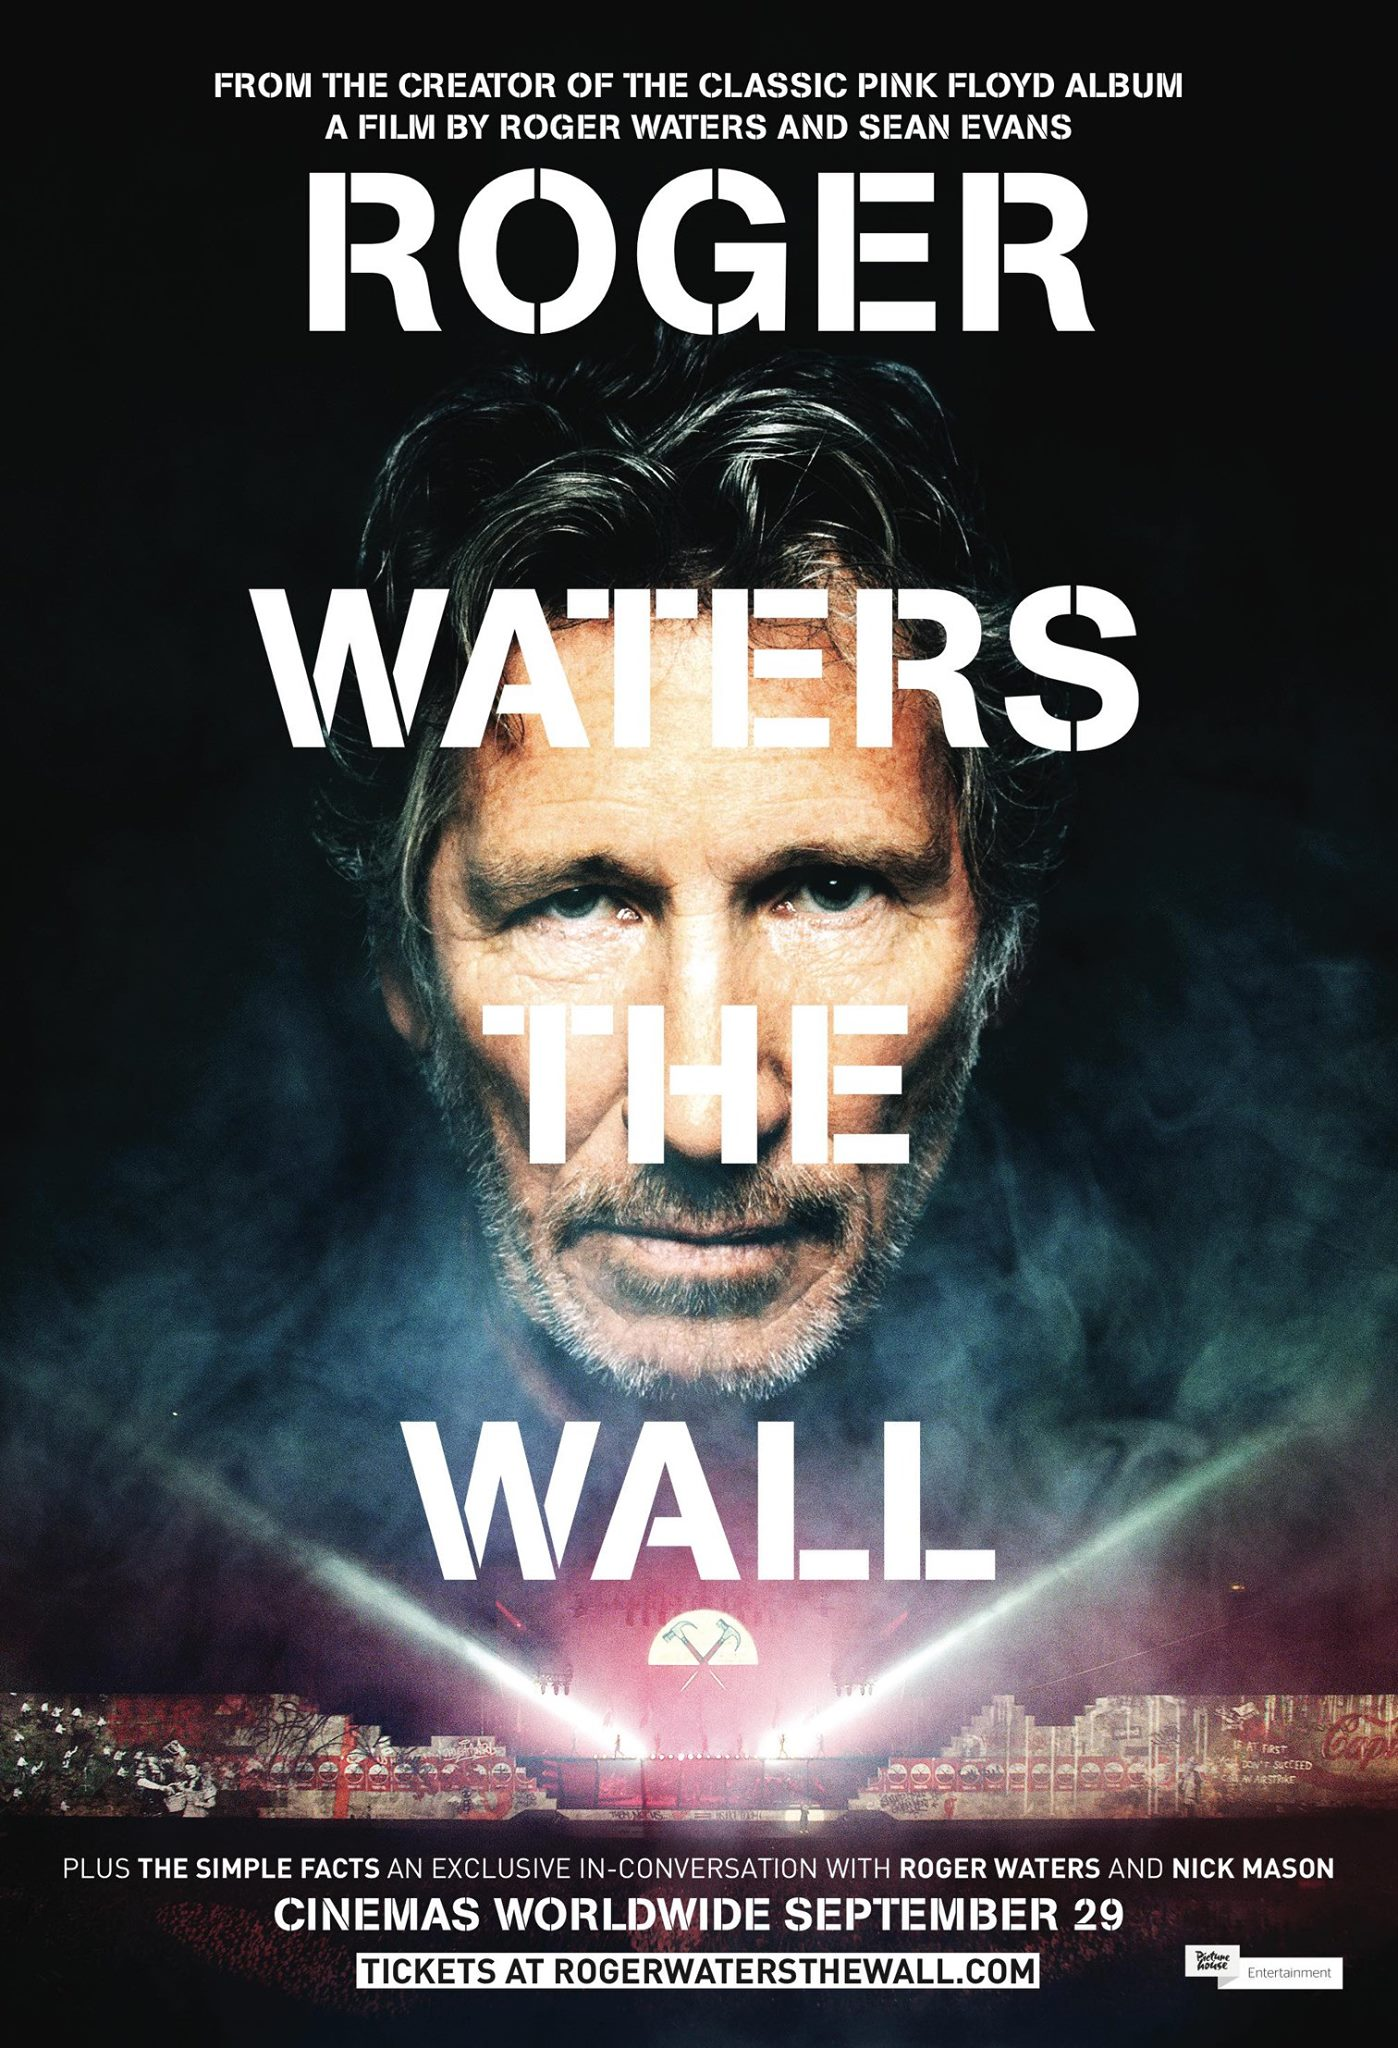 Roger Waters: The Wall (2014)